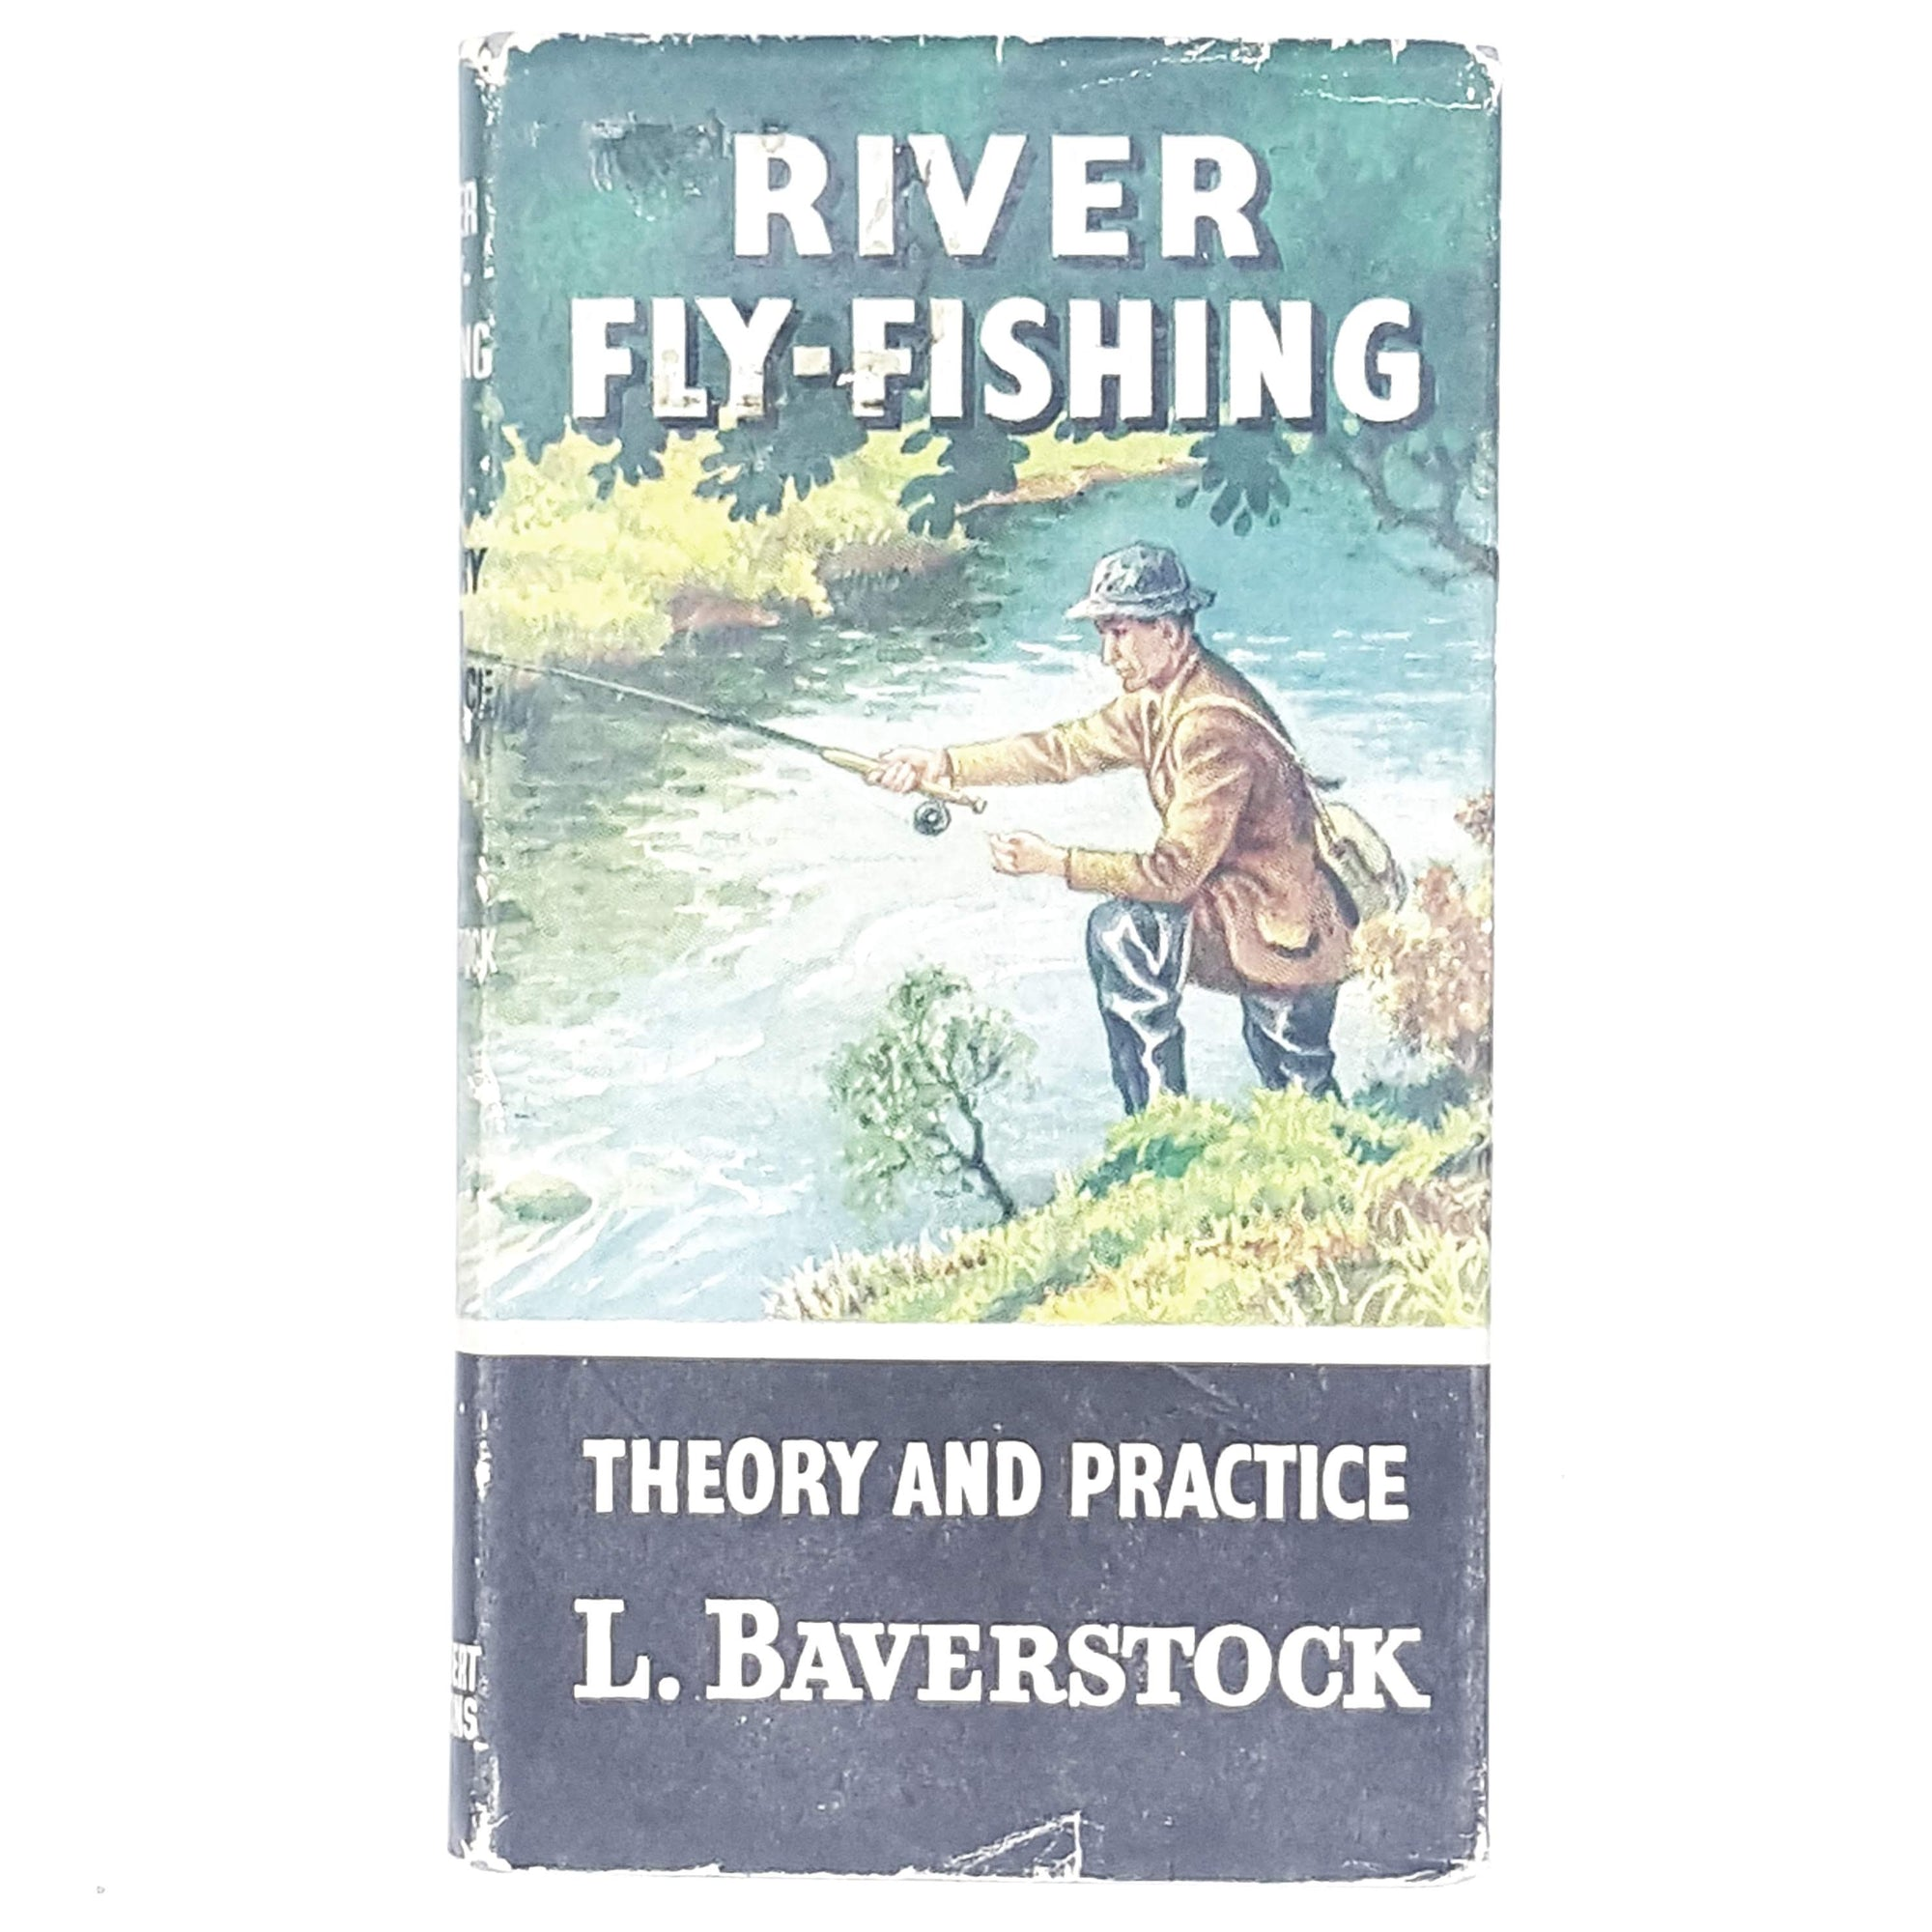 First Edition River Fly-Fishing Theory and Practice 1961